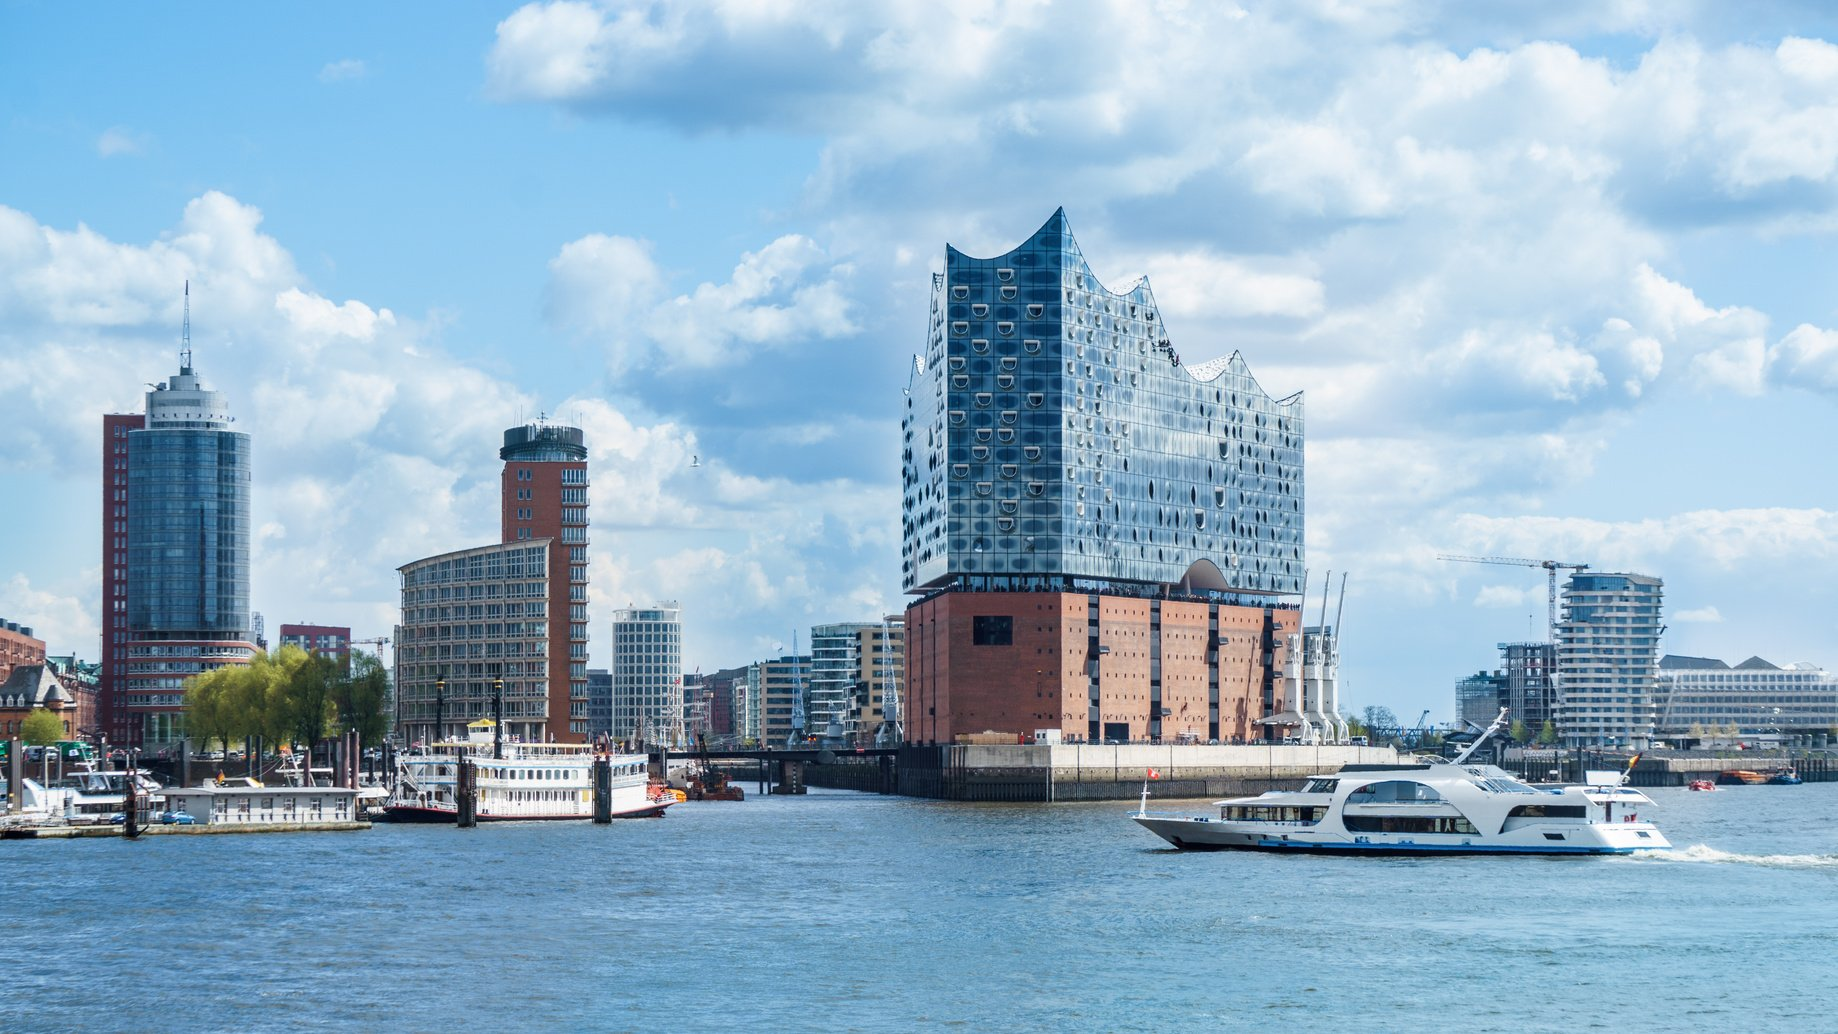 Hamburg, elbphilharmonie and modern buildings with boat to the harbor tour